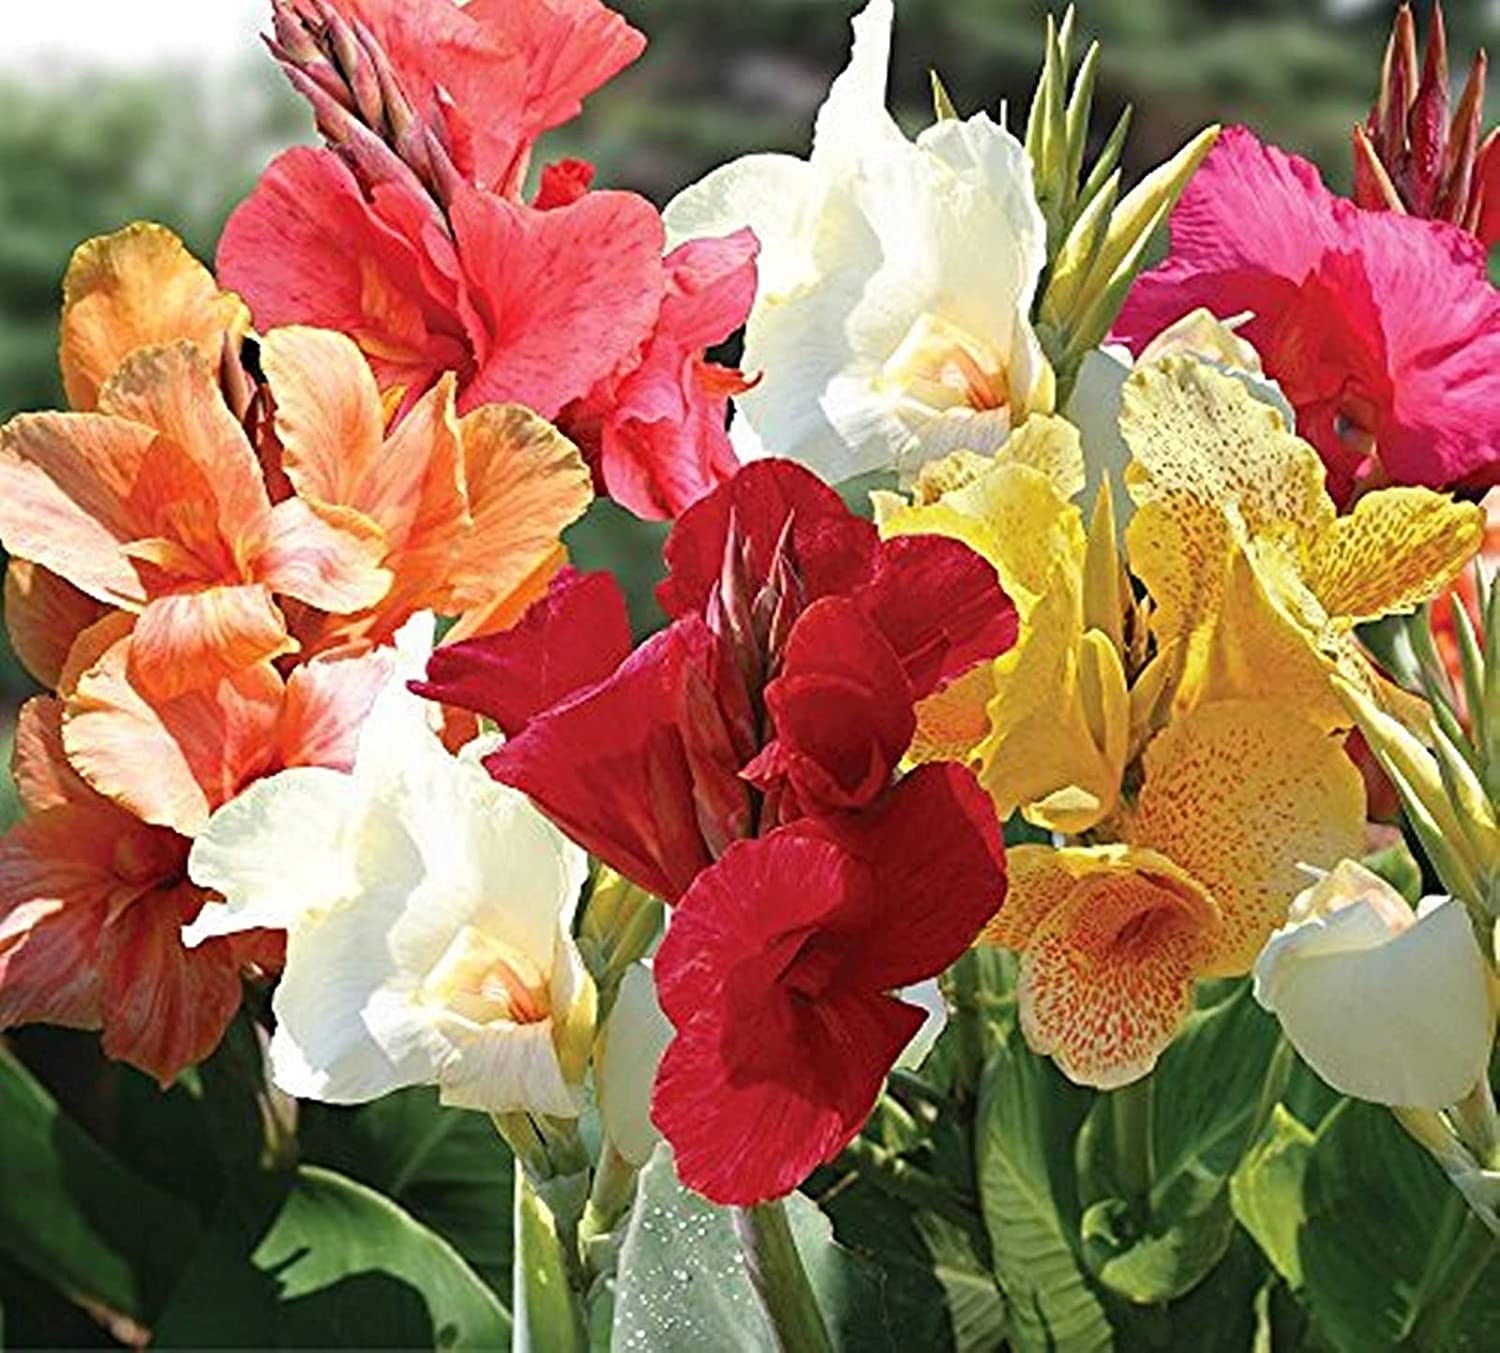 Boston Mall Easy to take Care of Max 54% OFF Garden Perfect Flowers Ornamental